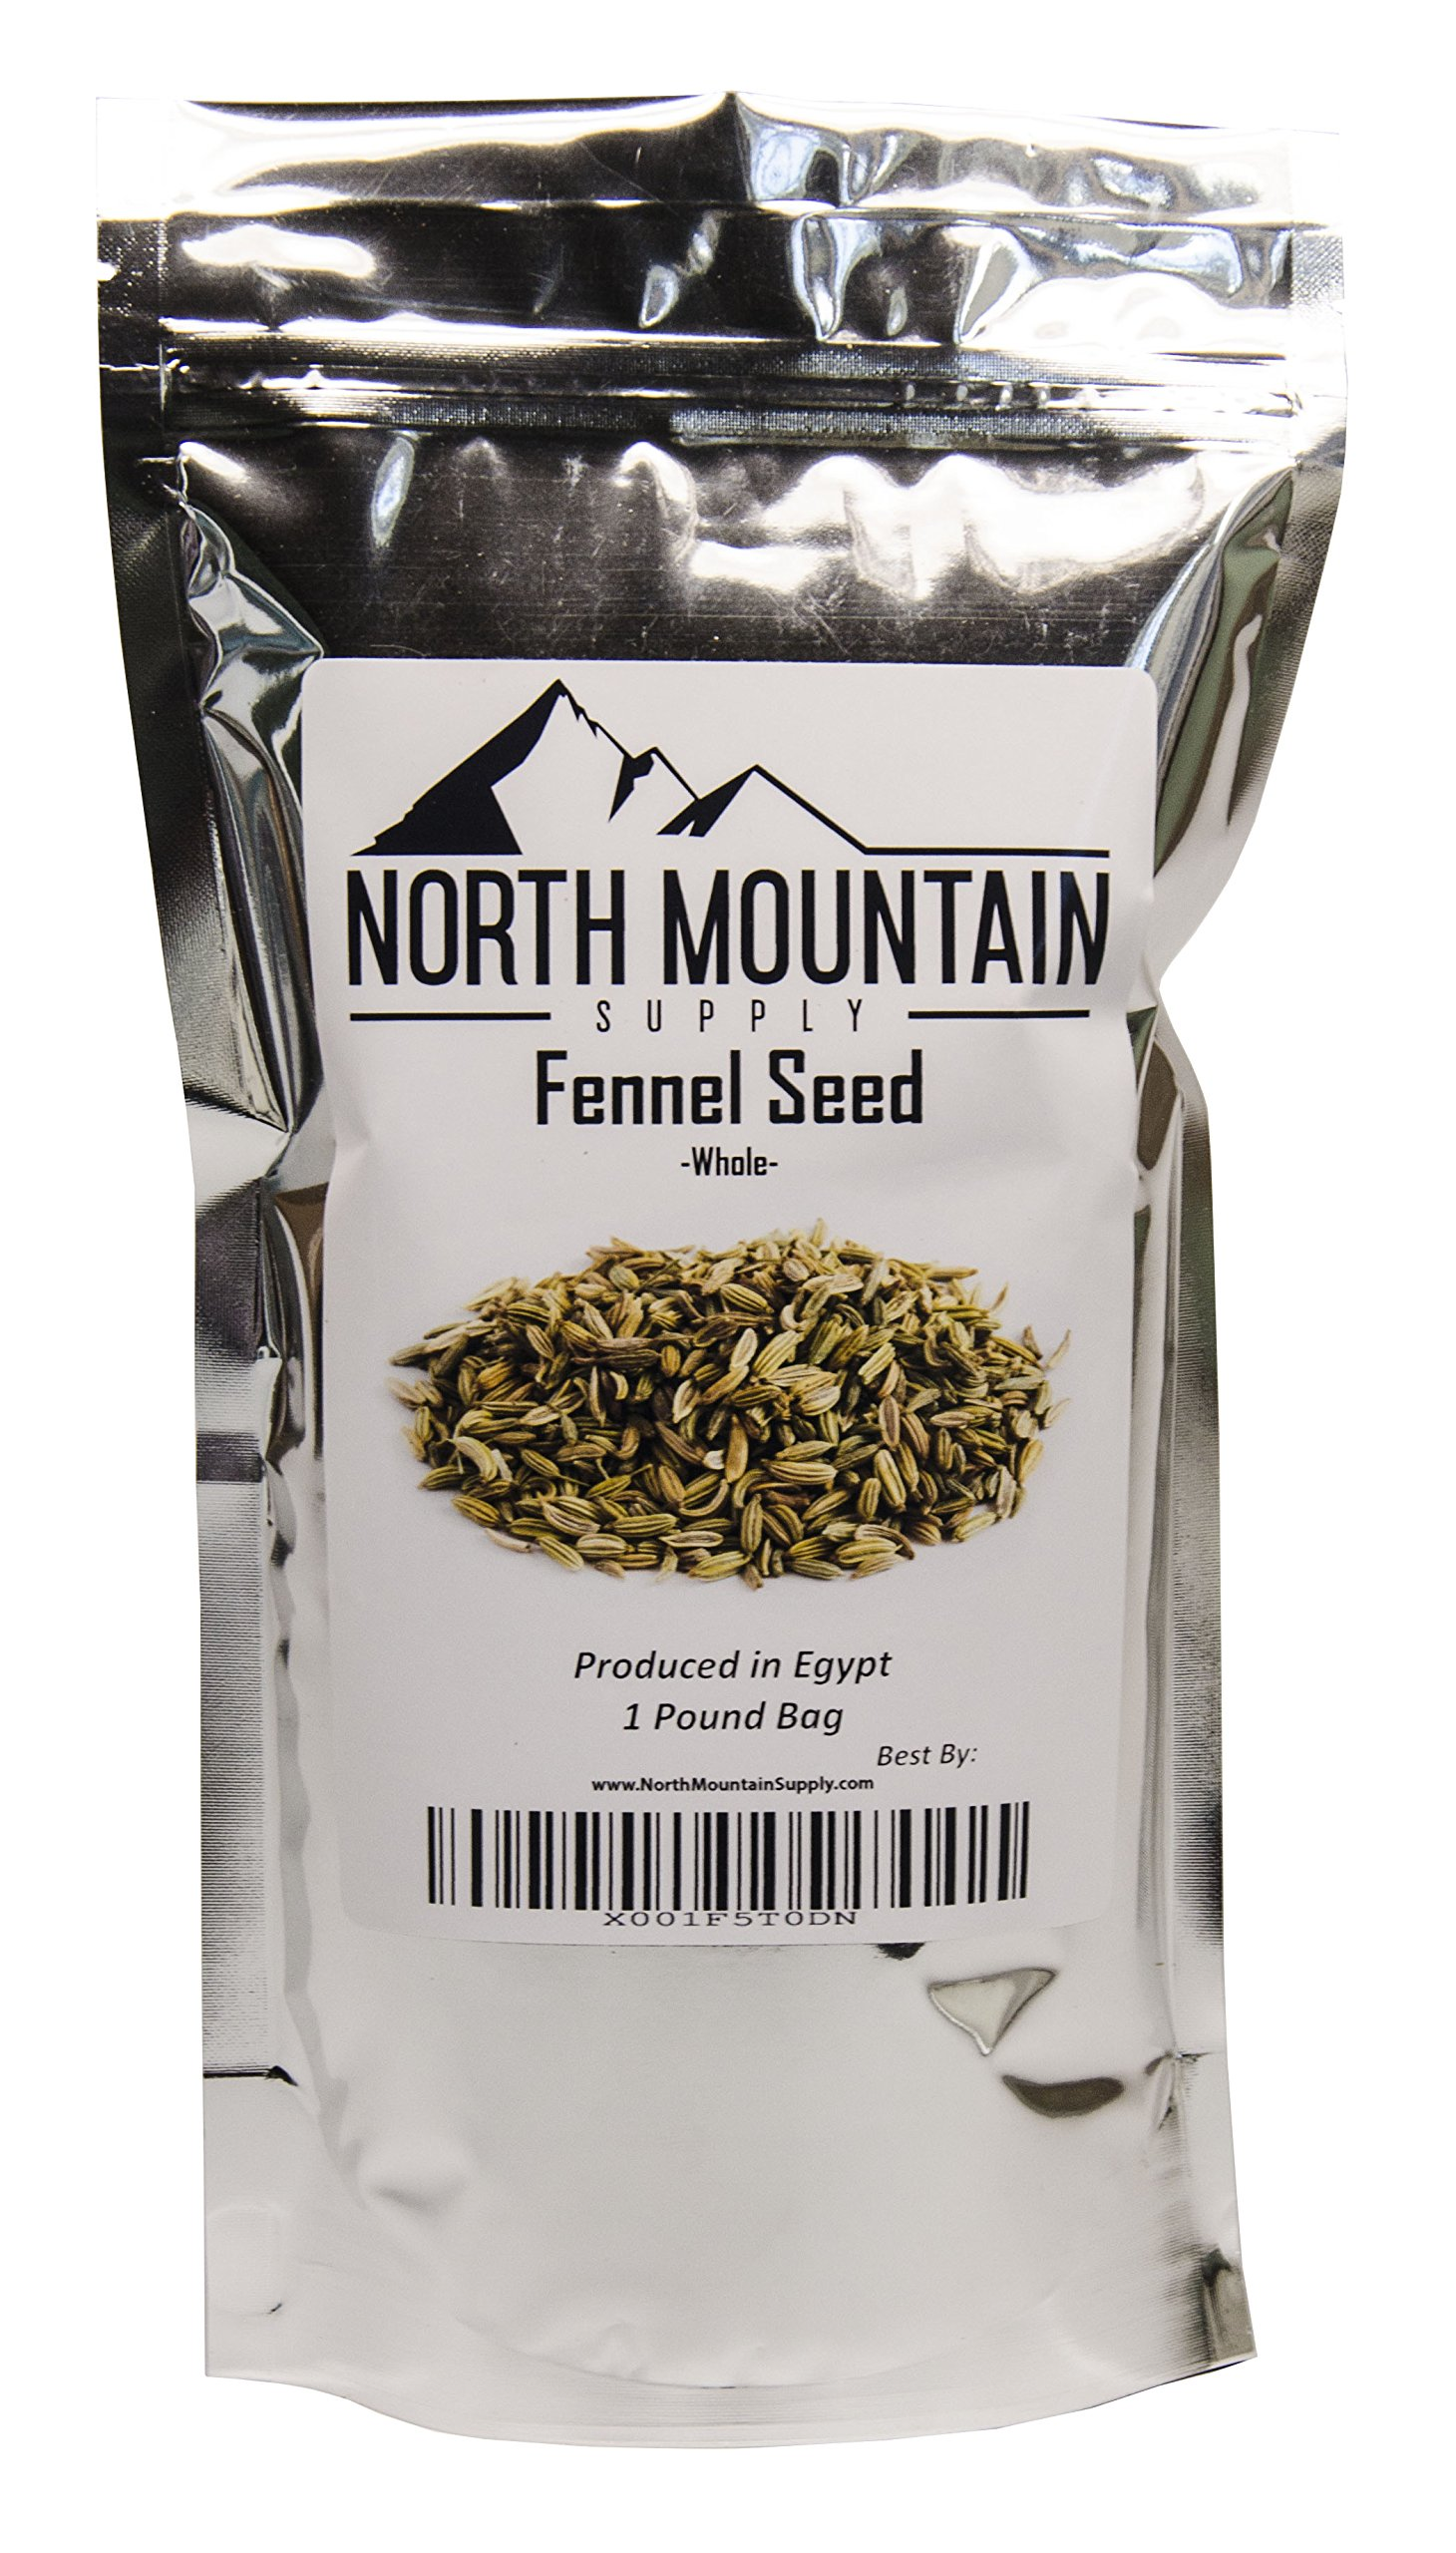 North Mountain Supply Bulk Whole Fennel Seed - 1 Pound Bag